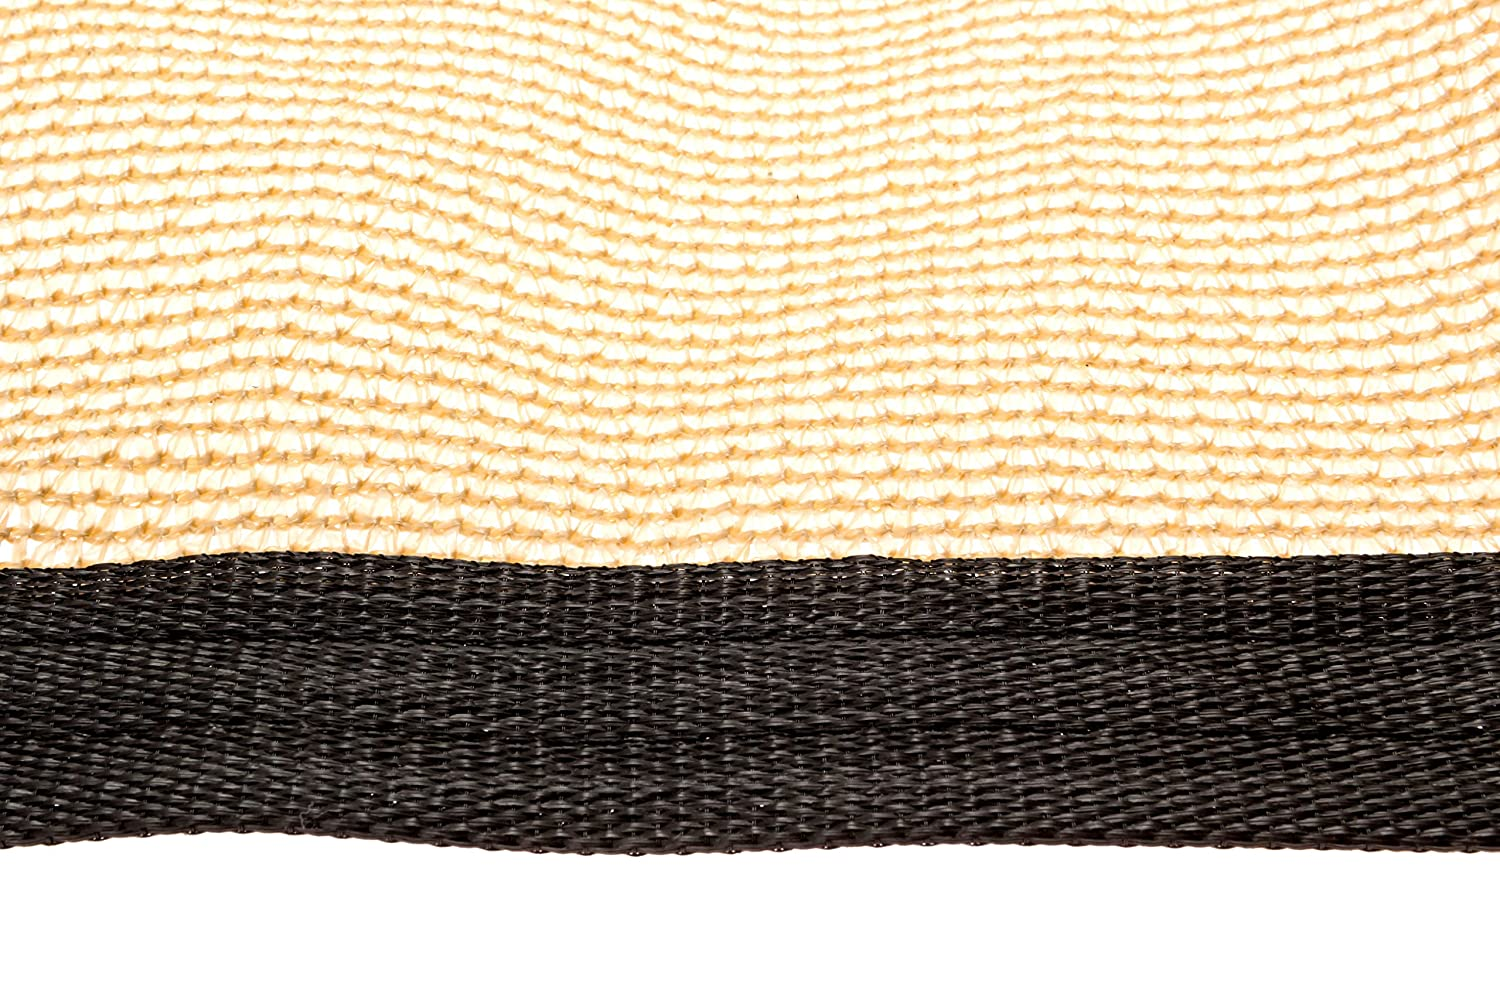 Be Cool Solutions 70 Brown Outdoor Sun Shade Canopy UV Protection Shade Cloth Lightweight, Easy Setup Mesh Canopy Cover with Grommets Sturdy, Durable Shade Fabric for Garden, Patio Porch 6 x12